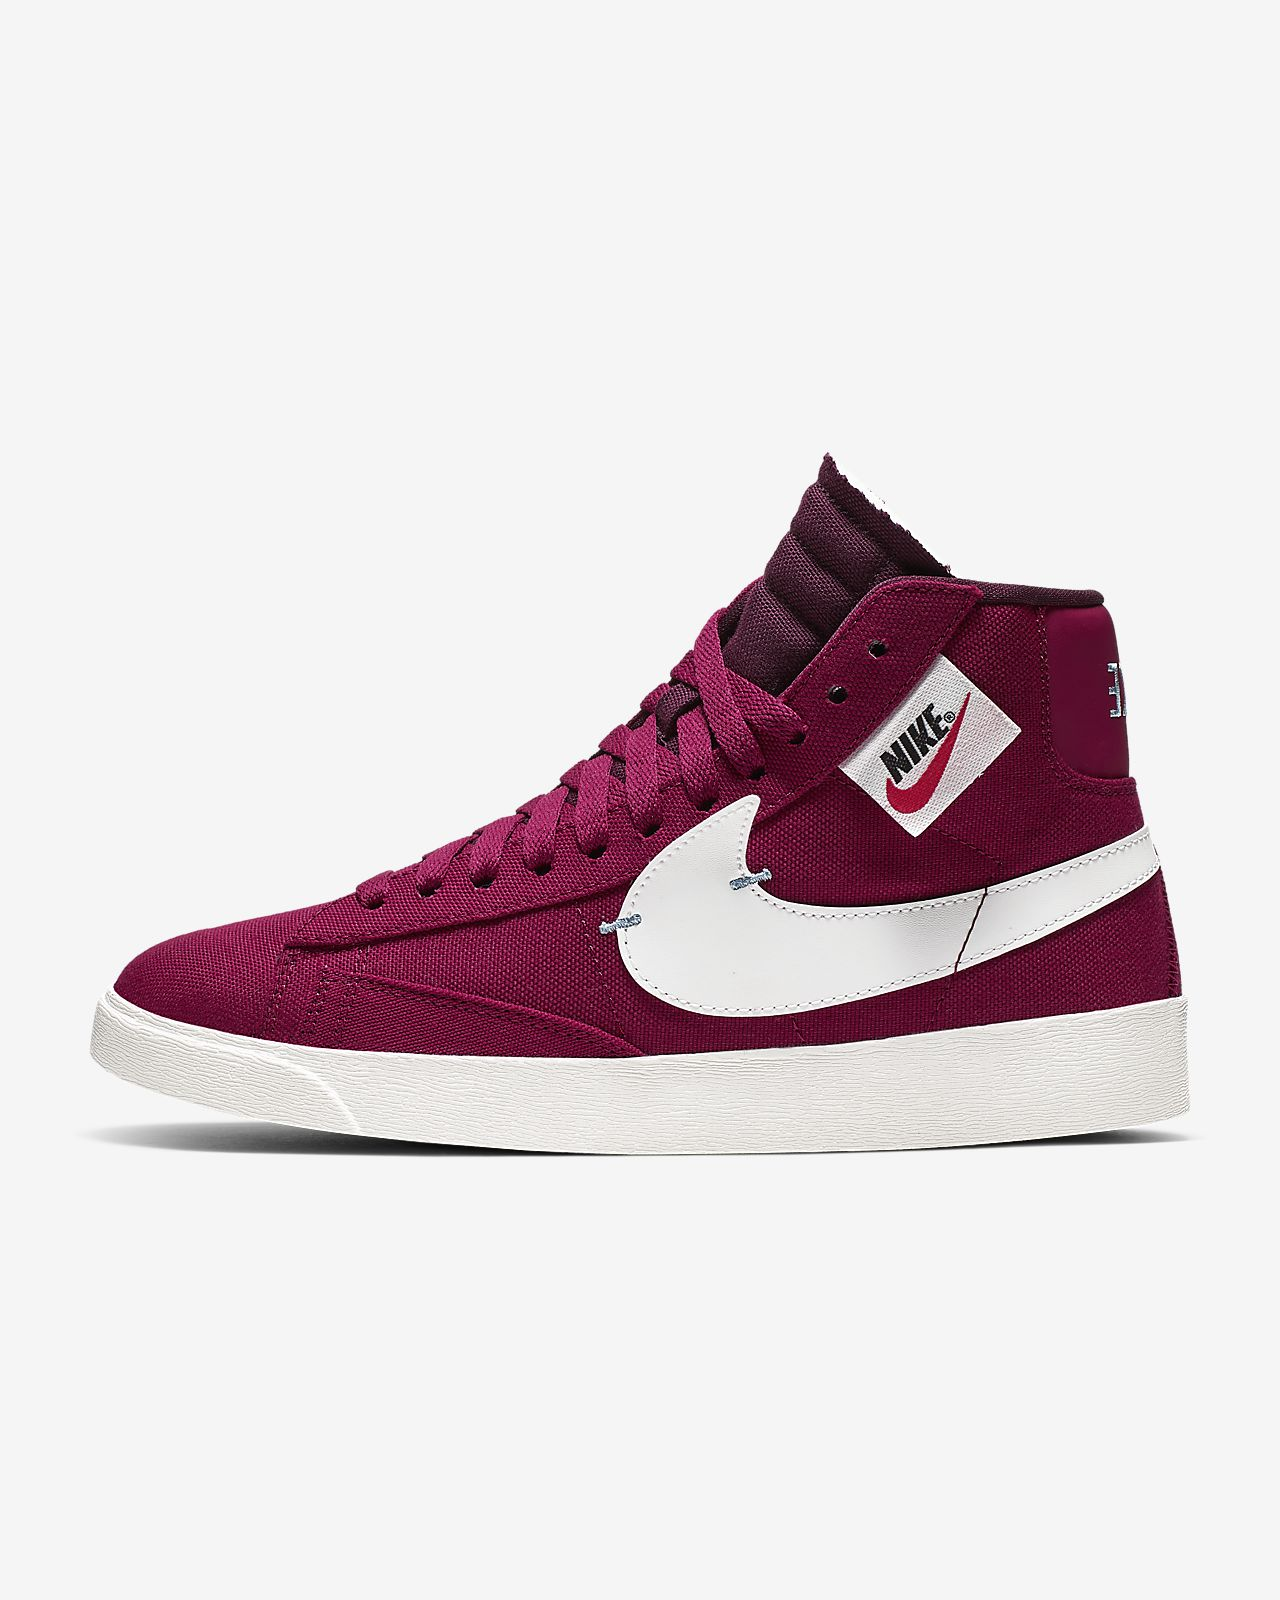 56a9d01c1b5 Nike Blazer Mid Rebel Women's Shoe